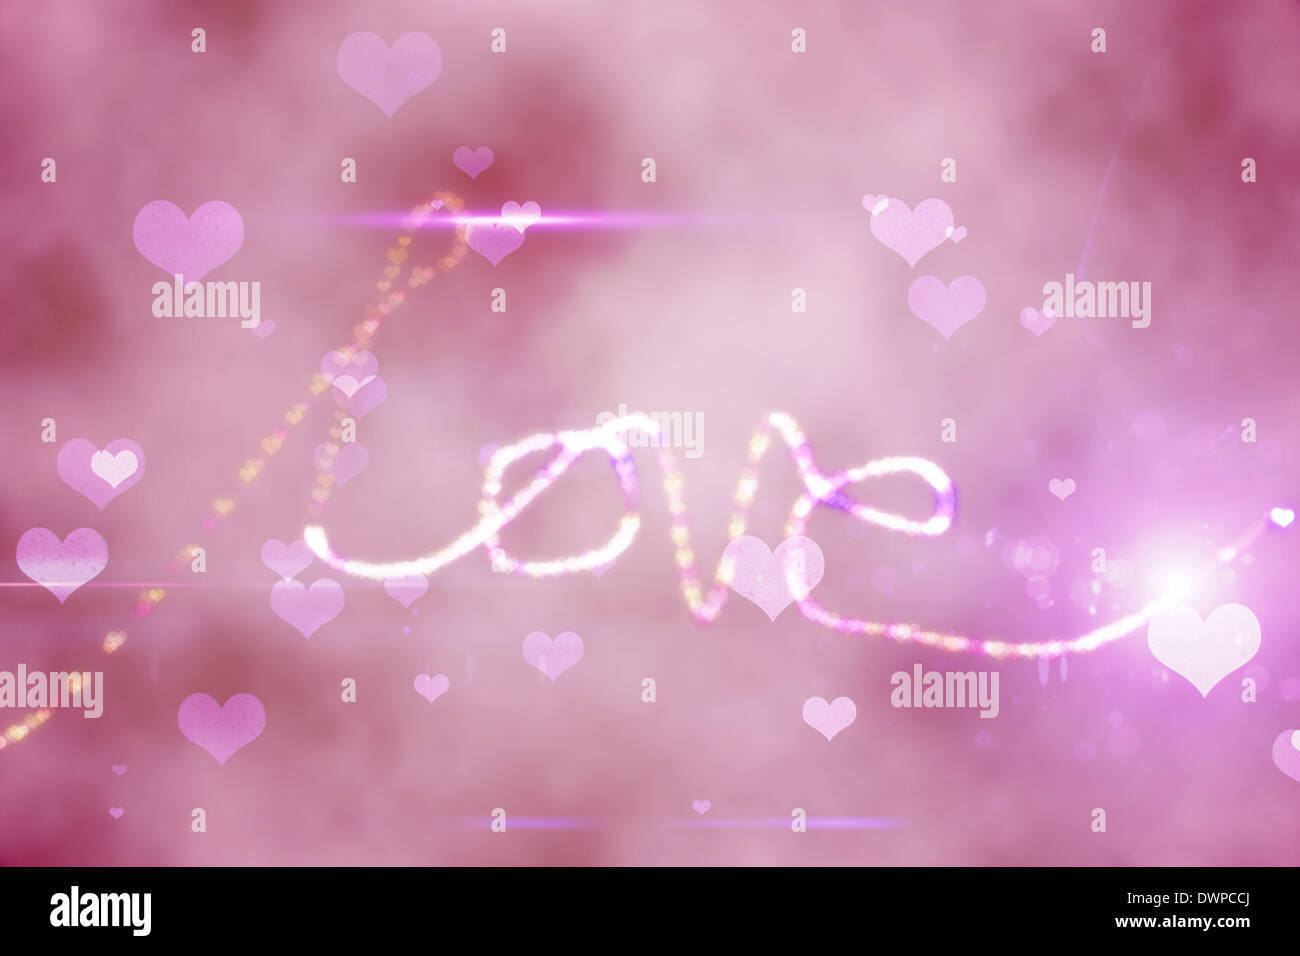 Digitally generated love background - Stock Image